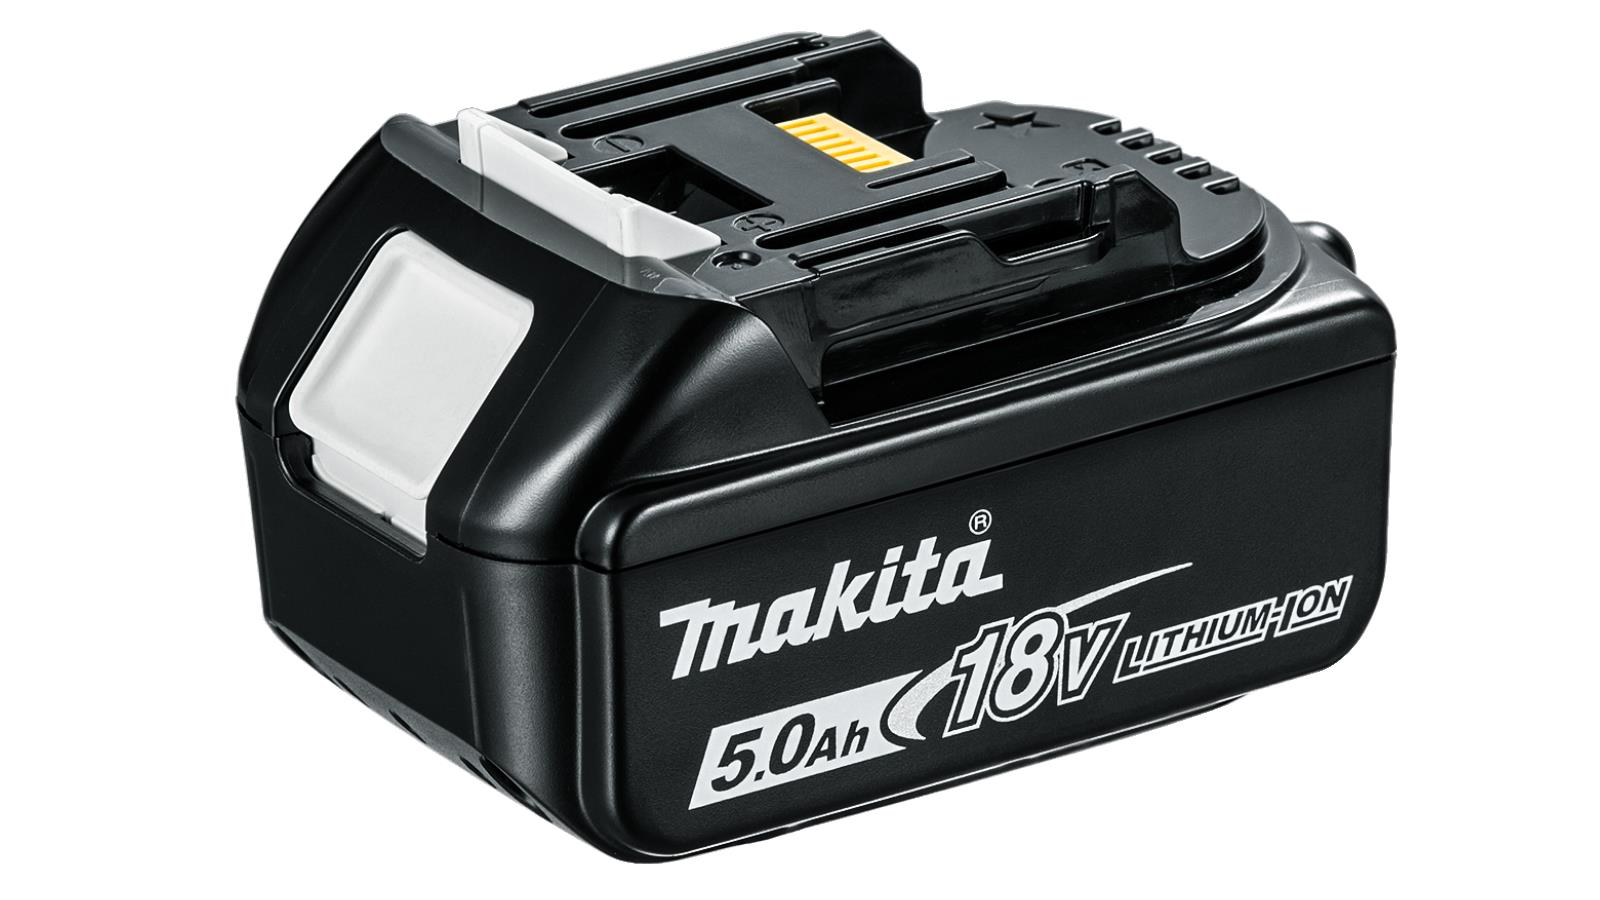 Makita's Gift for Gardeners image